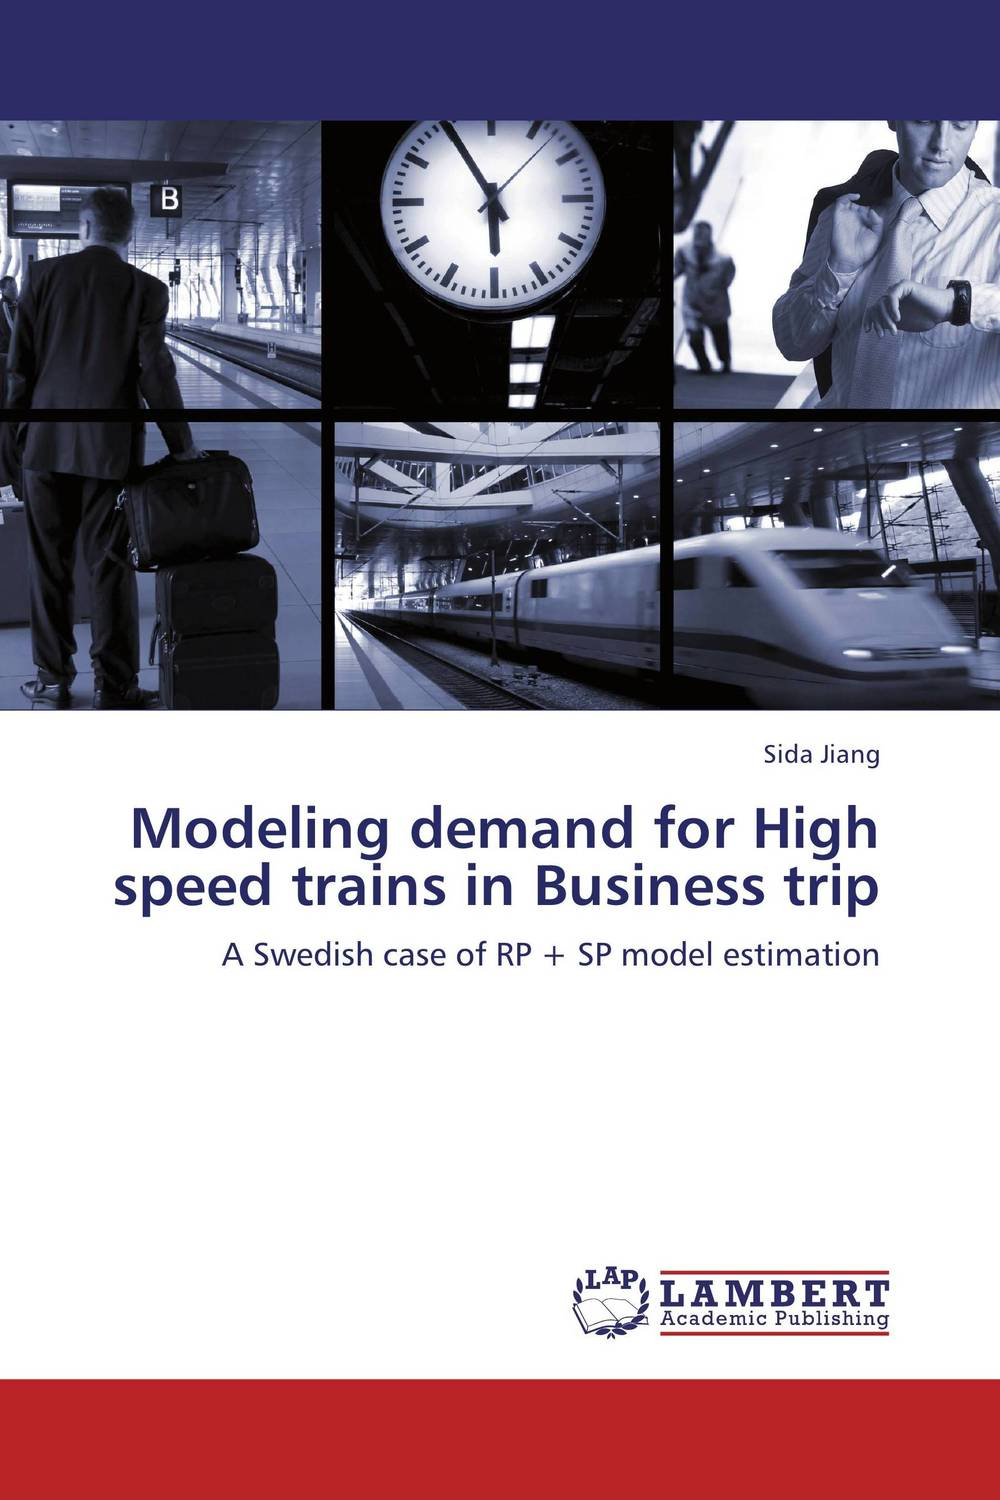 Modeling demand for High speed trains in Business trip 3d dynamic models of a railway track for high speed trains